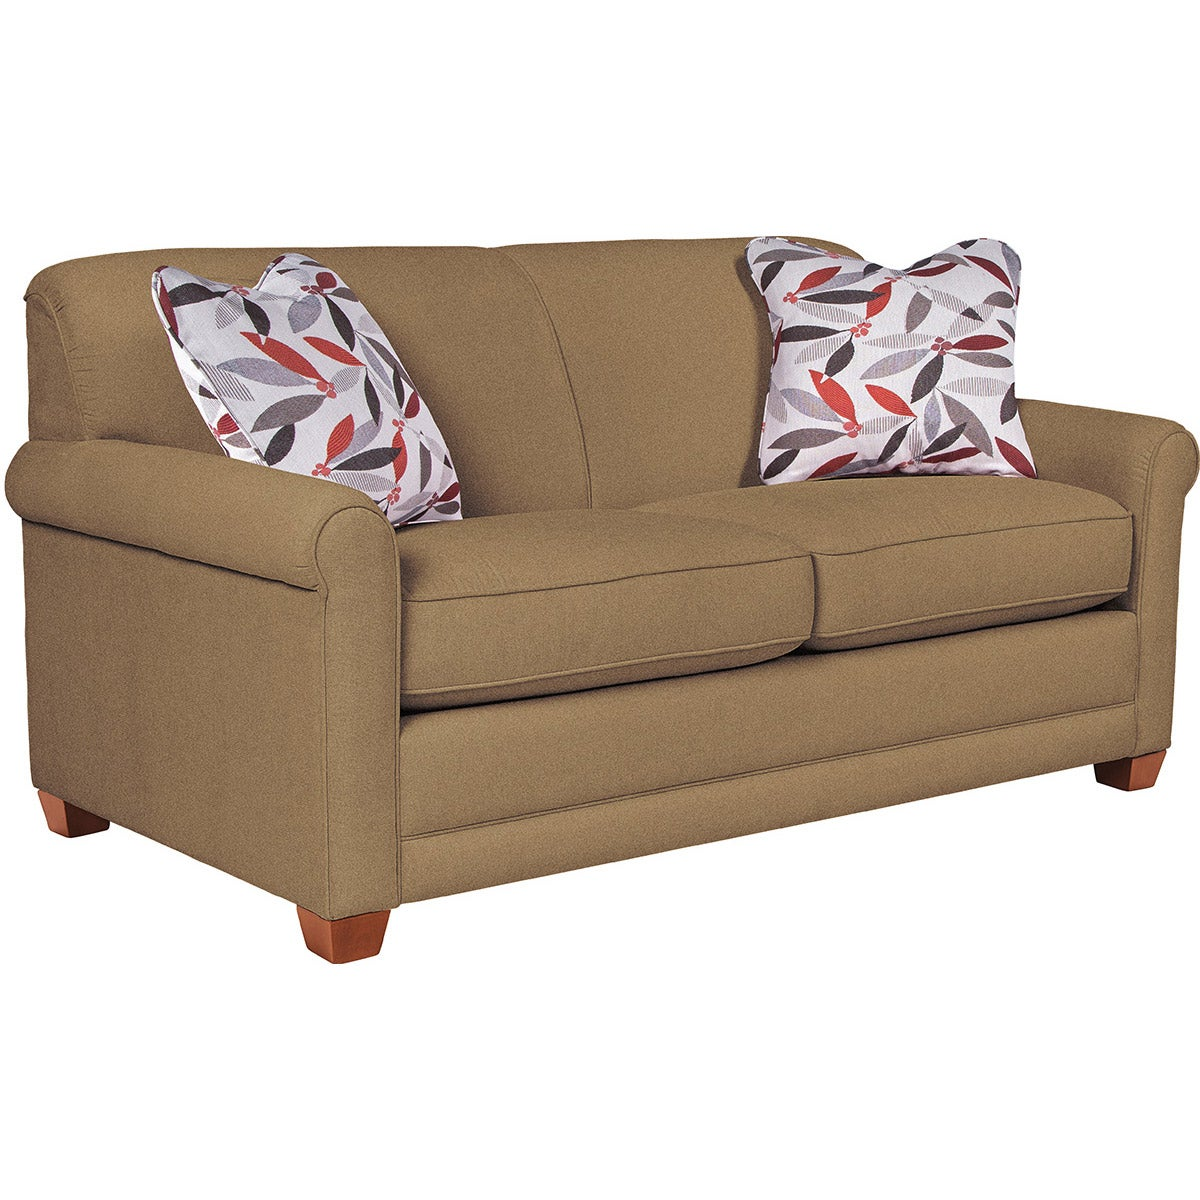 Amanda Premier Apartment Size Sofa